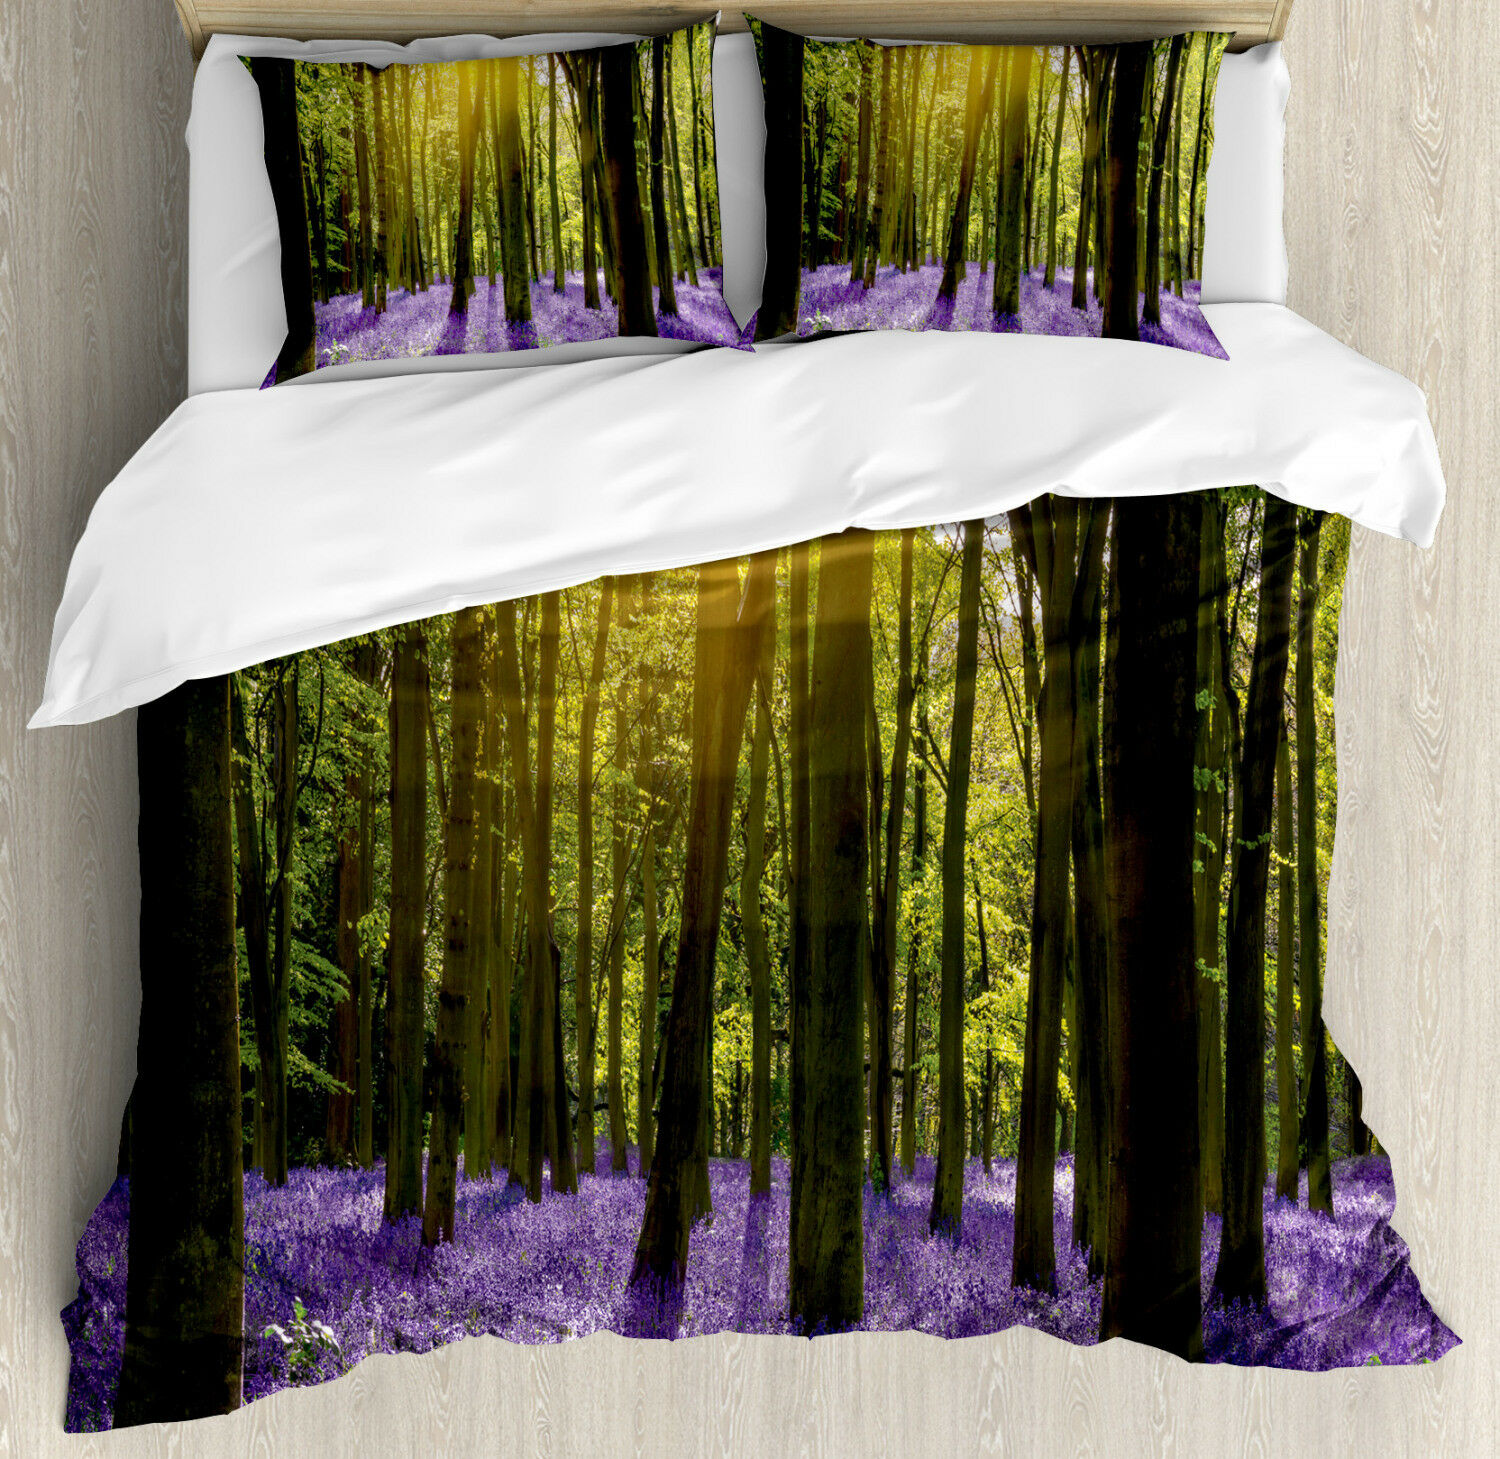 Woodland Duvet Cover Set with Pillow Shams blubell Blossoms Print